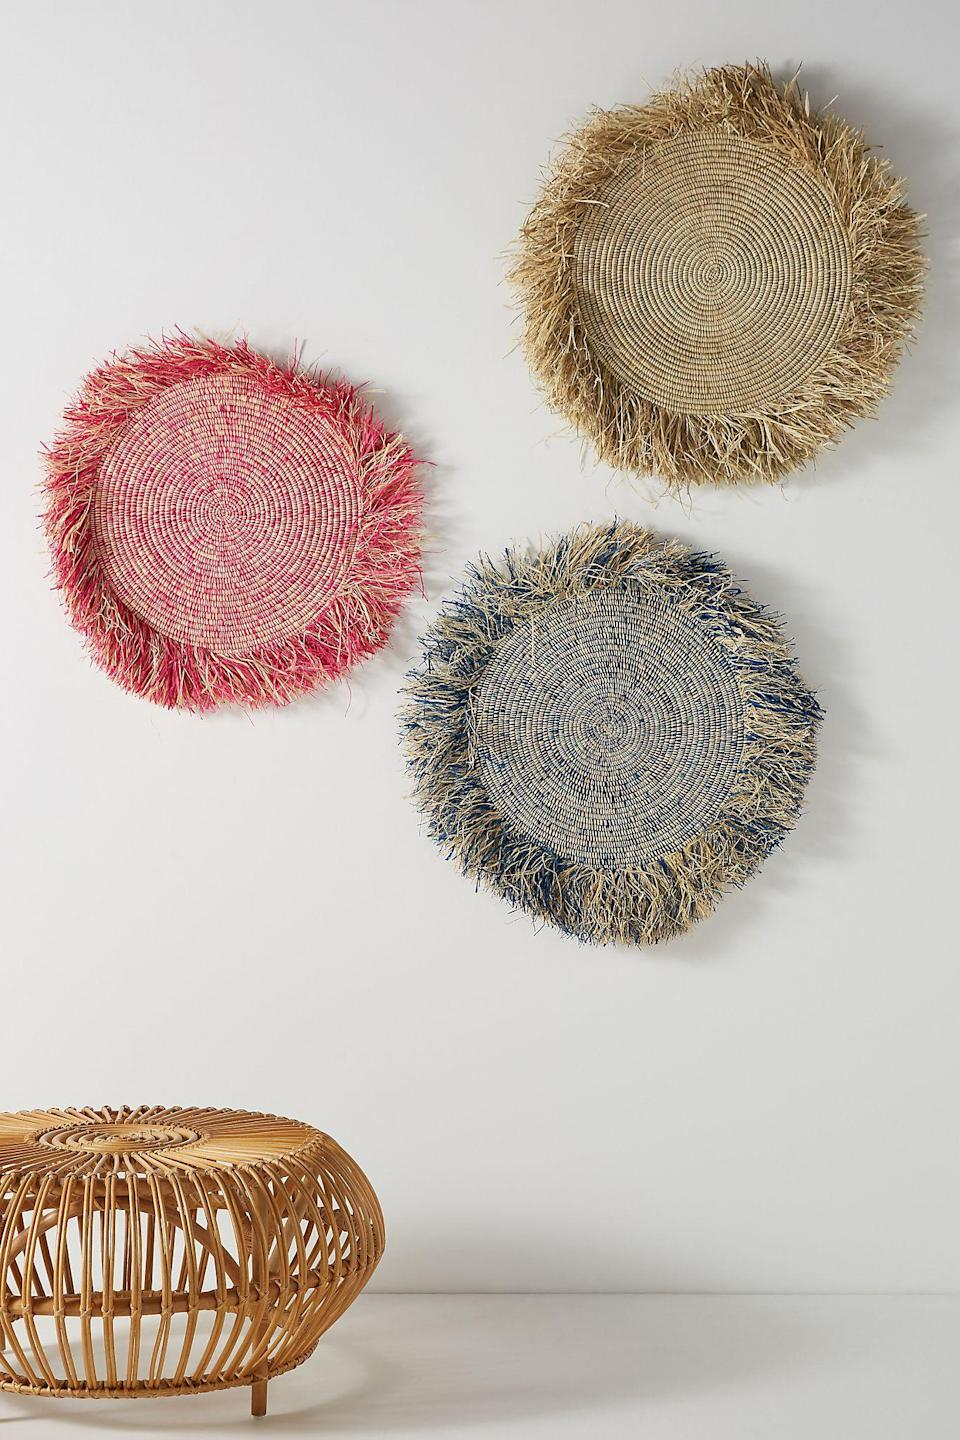 """<h3><a href=""""https://www.anthropologie.com/decor-art"""" rel=""""nofollow noopener"""" target=""""_blank"""" data-ylk=""""slk:Anthropologie"""" class=""""link rapid-noclick-resp"""">Anthropologie</a></h3><br>We love anything and everything from Anthropologie's home & furniture section, and its collection of wall art is no exception. They've got plenty of bohemian-cool, handcrafted decor items including a great selection of woven basket situations that are made to be mounted on the wall.<br><br><strong>All Across Africa</strong> Fringed Hanging Basket, $, available at <a href=""""https://go.skimresources.com/?id=30283X879131&url=https%3A%2F%2Fwww.anthropologie.com%2Fshop%2Ffringed-hanging-basket"""" rel=""""nofollow noopener"""" target=""""_blank"""" data-ylk=""""slk:Anthropologie"""" class=""""link rapid-noclick-resp"""">Anthropologie</a>"""